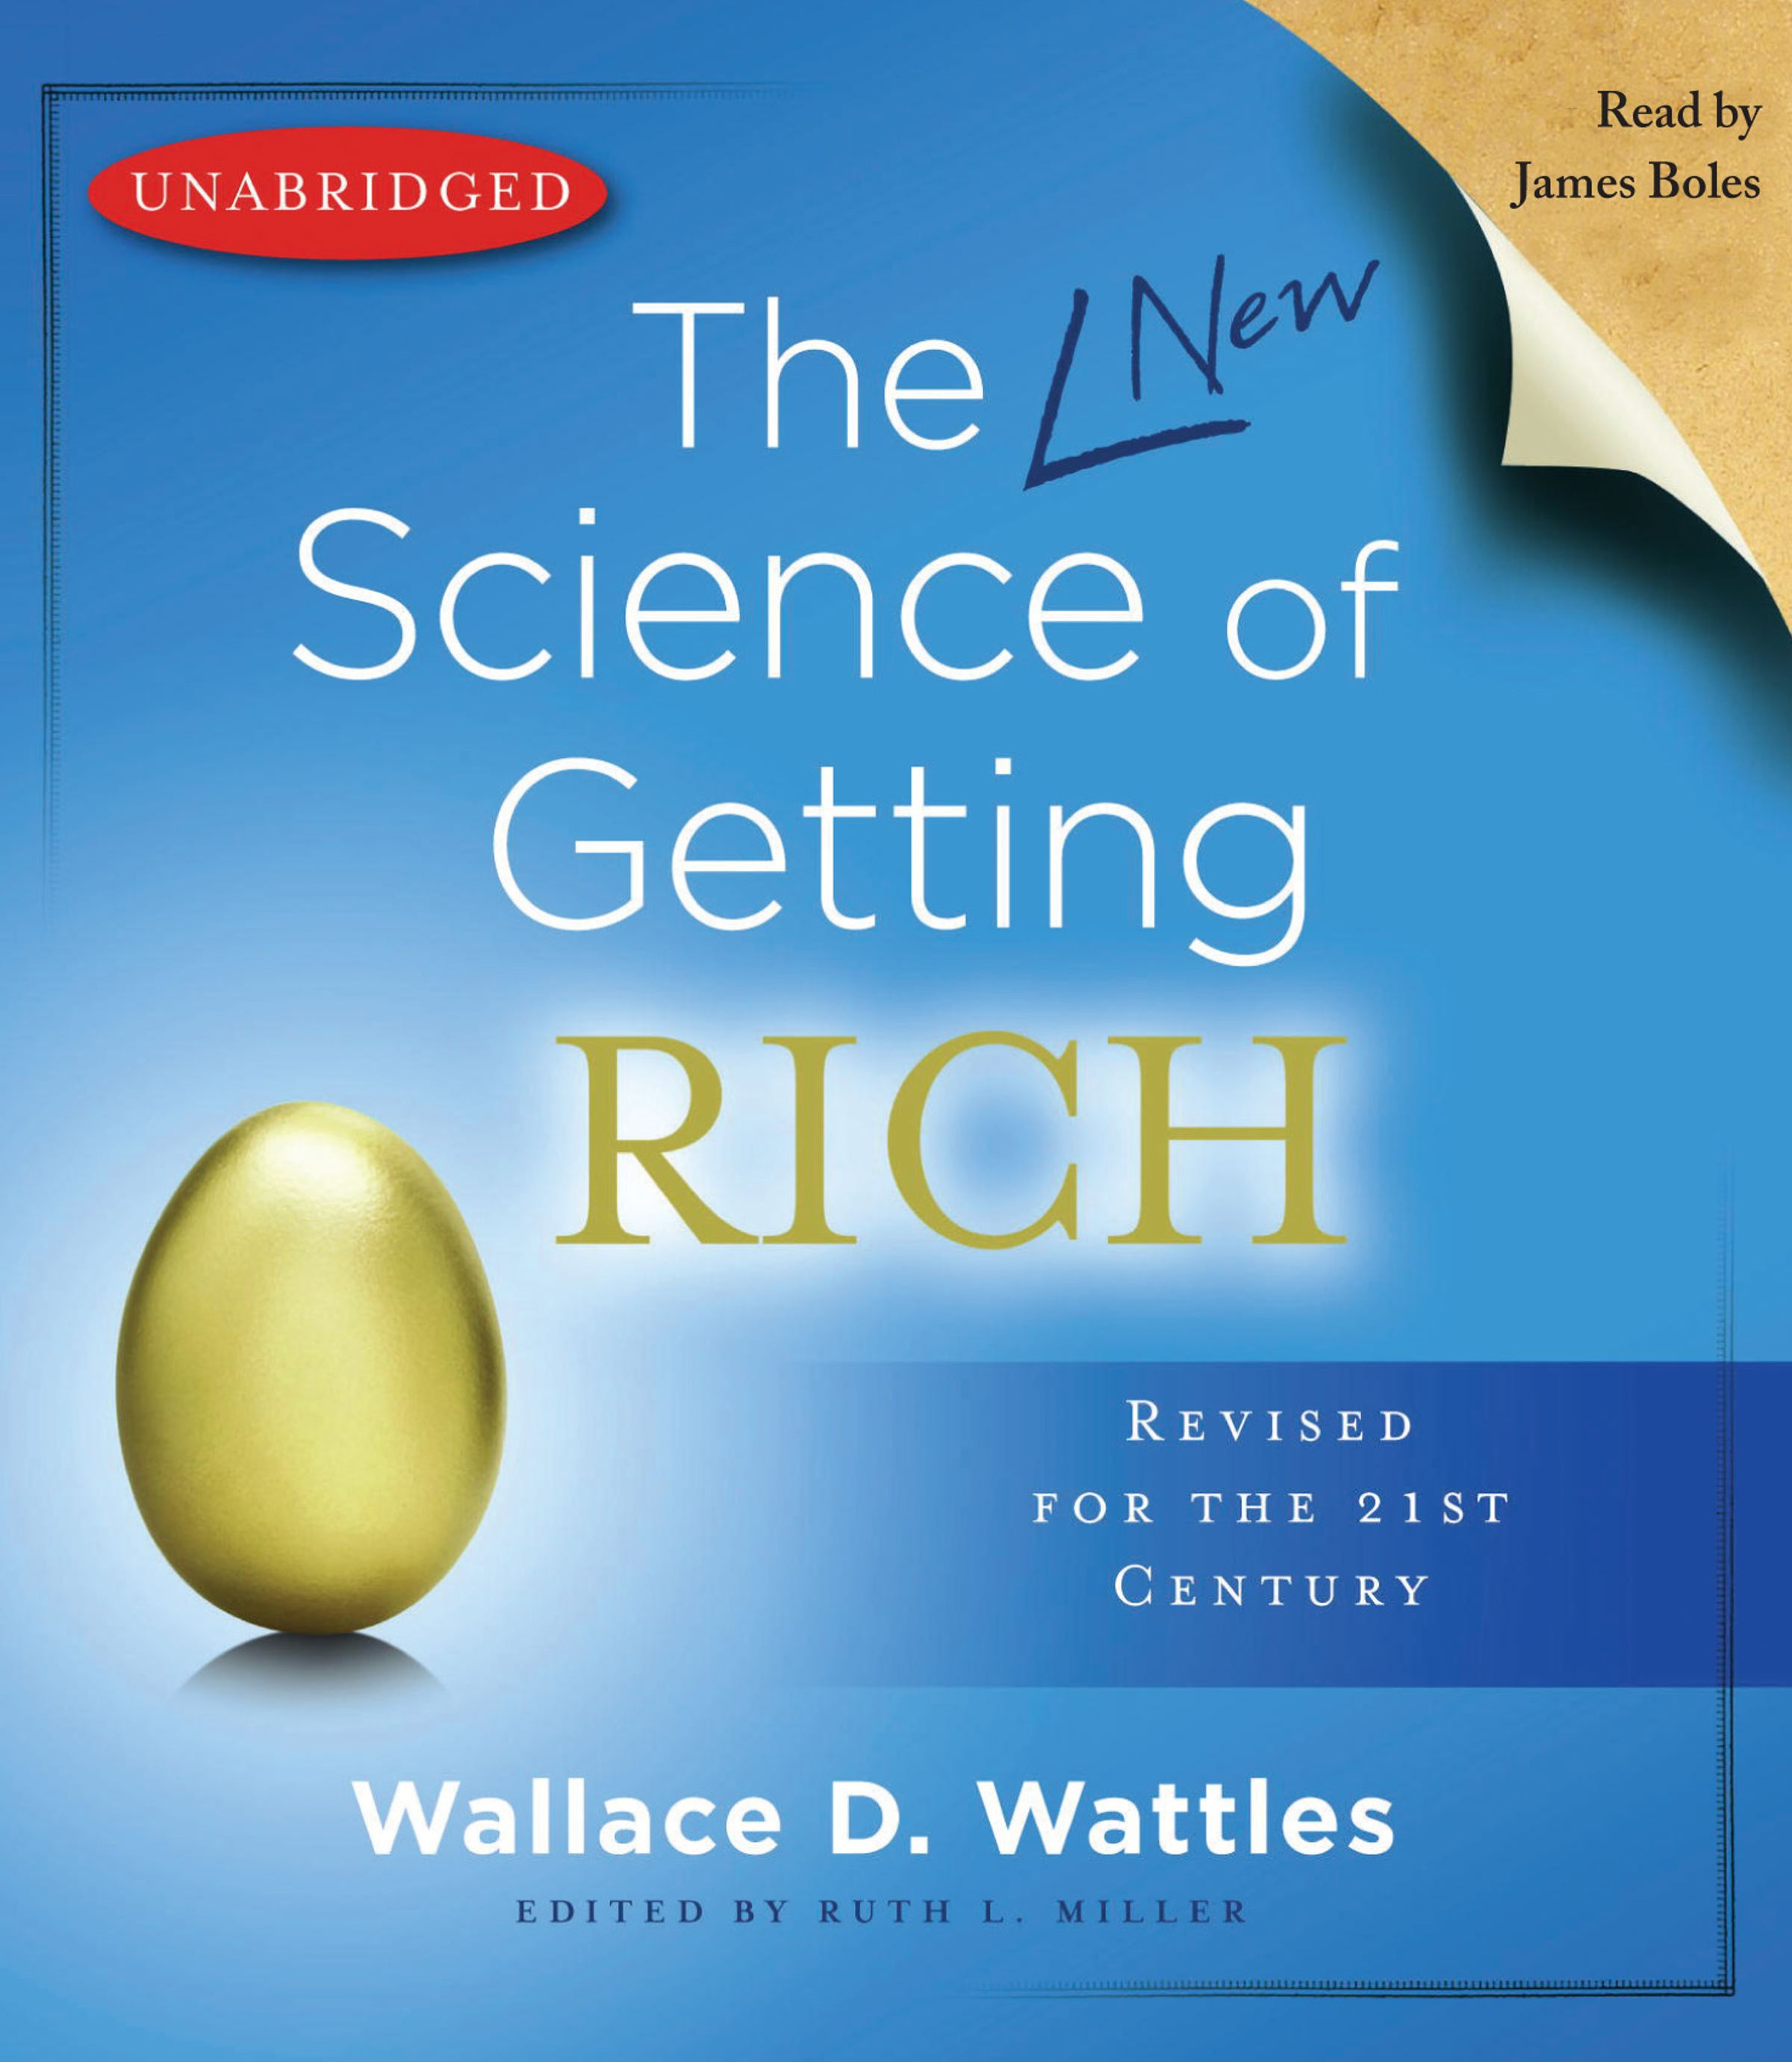 Science-of-getting-rich-9780743572194_hr